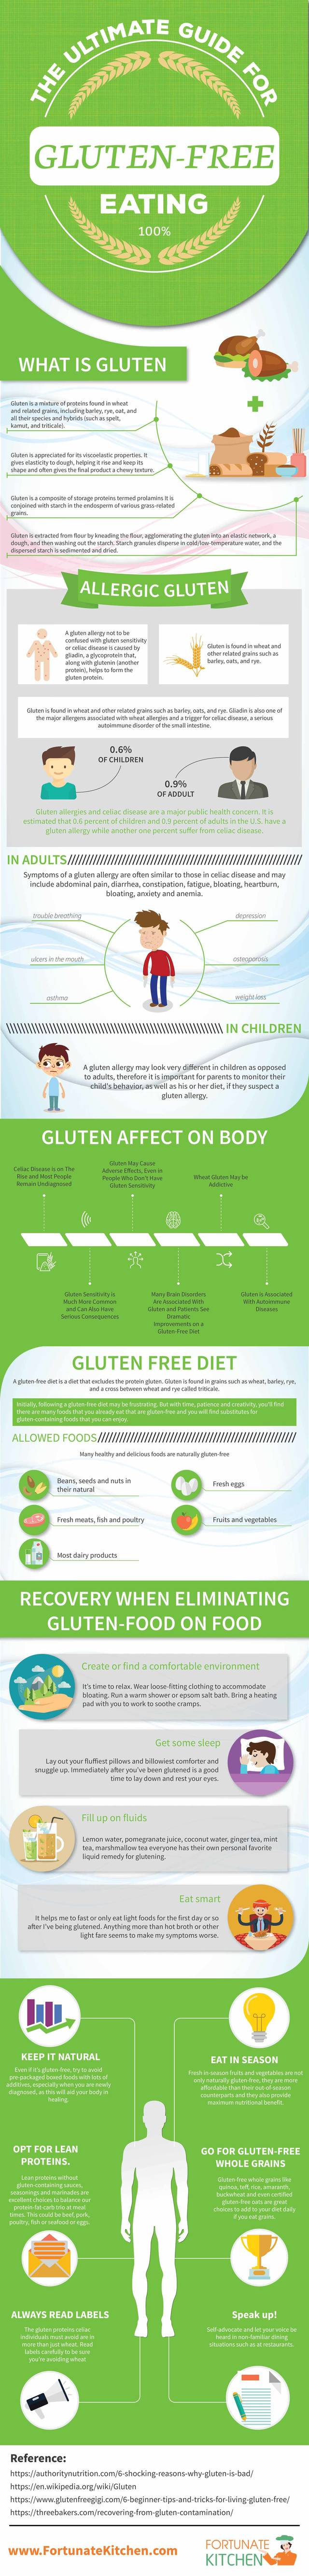 Easy gluten free living for every day life infographic